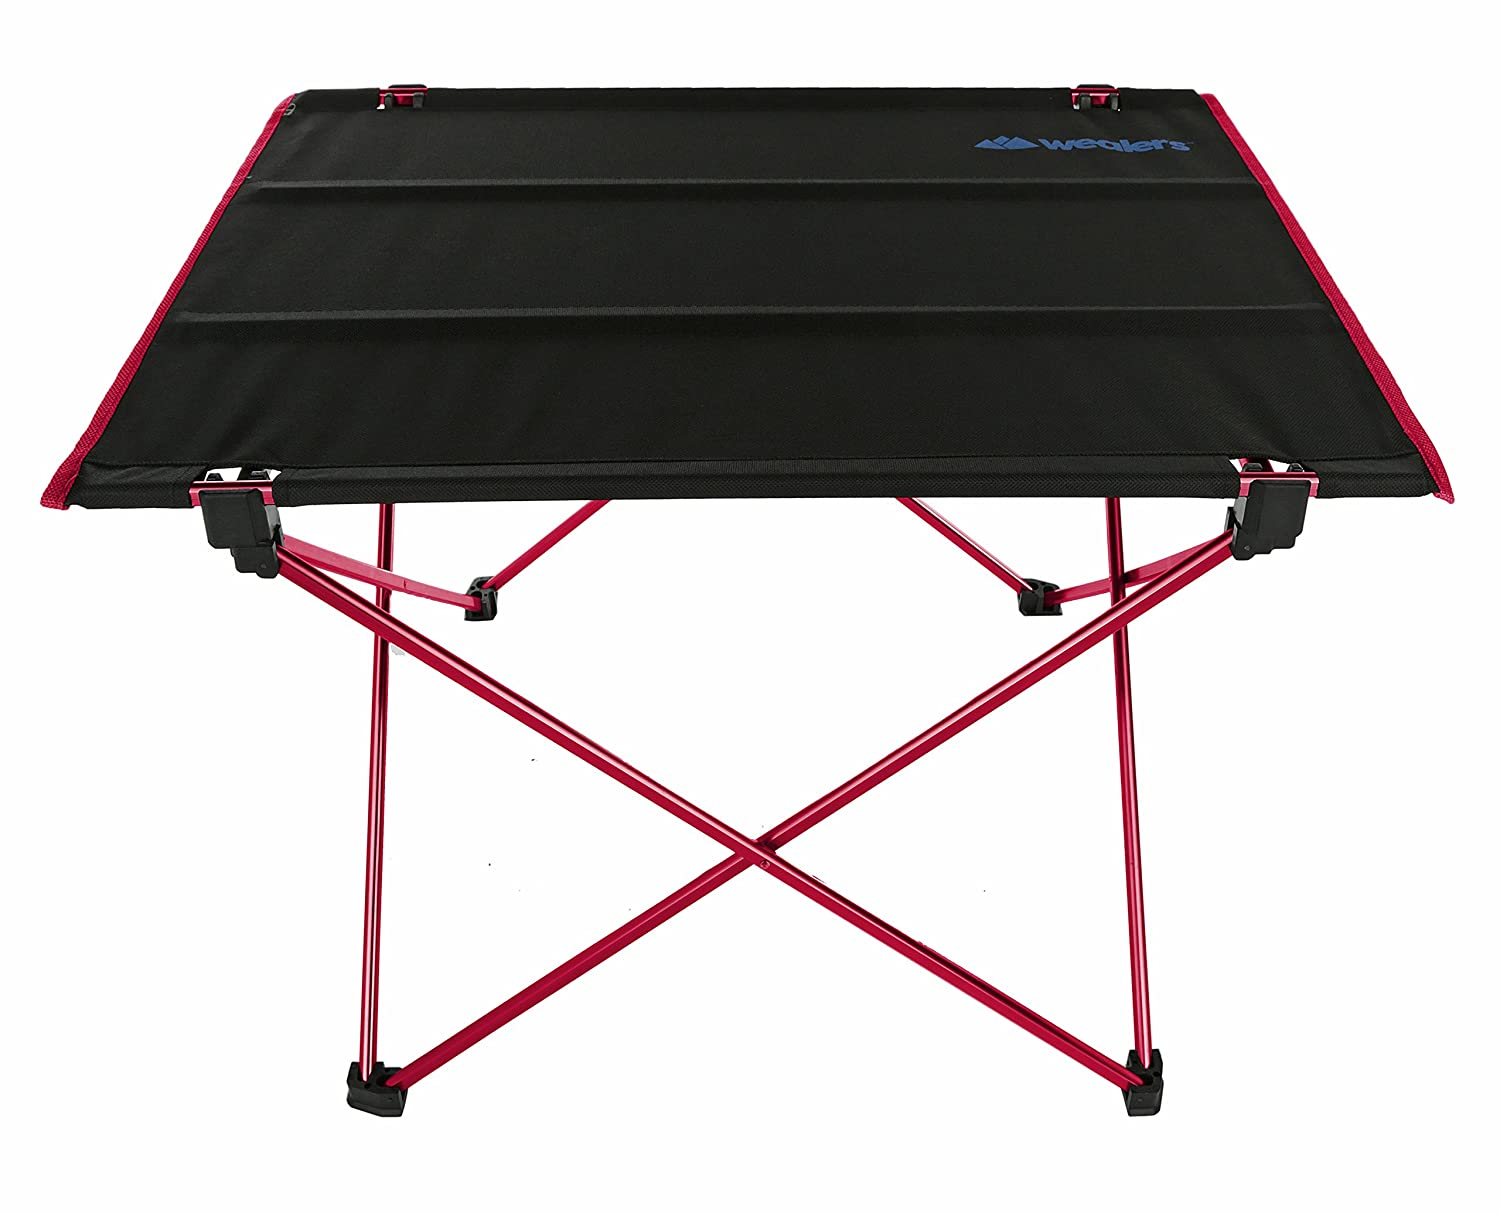 Wealers Portable Folding Picnic Table in a Bag- Collapsible Lightweight Travel Beach Table with Commuter ToteBag for All Outdoor Events BBQ s Camping Fishing Backyard Parties Sporting